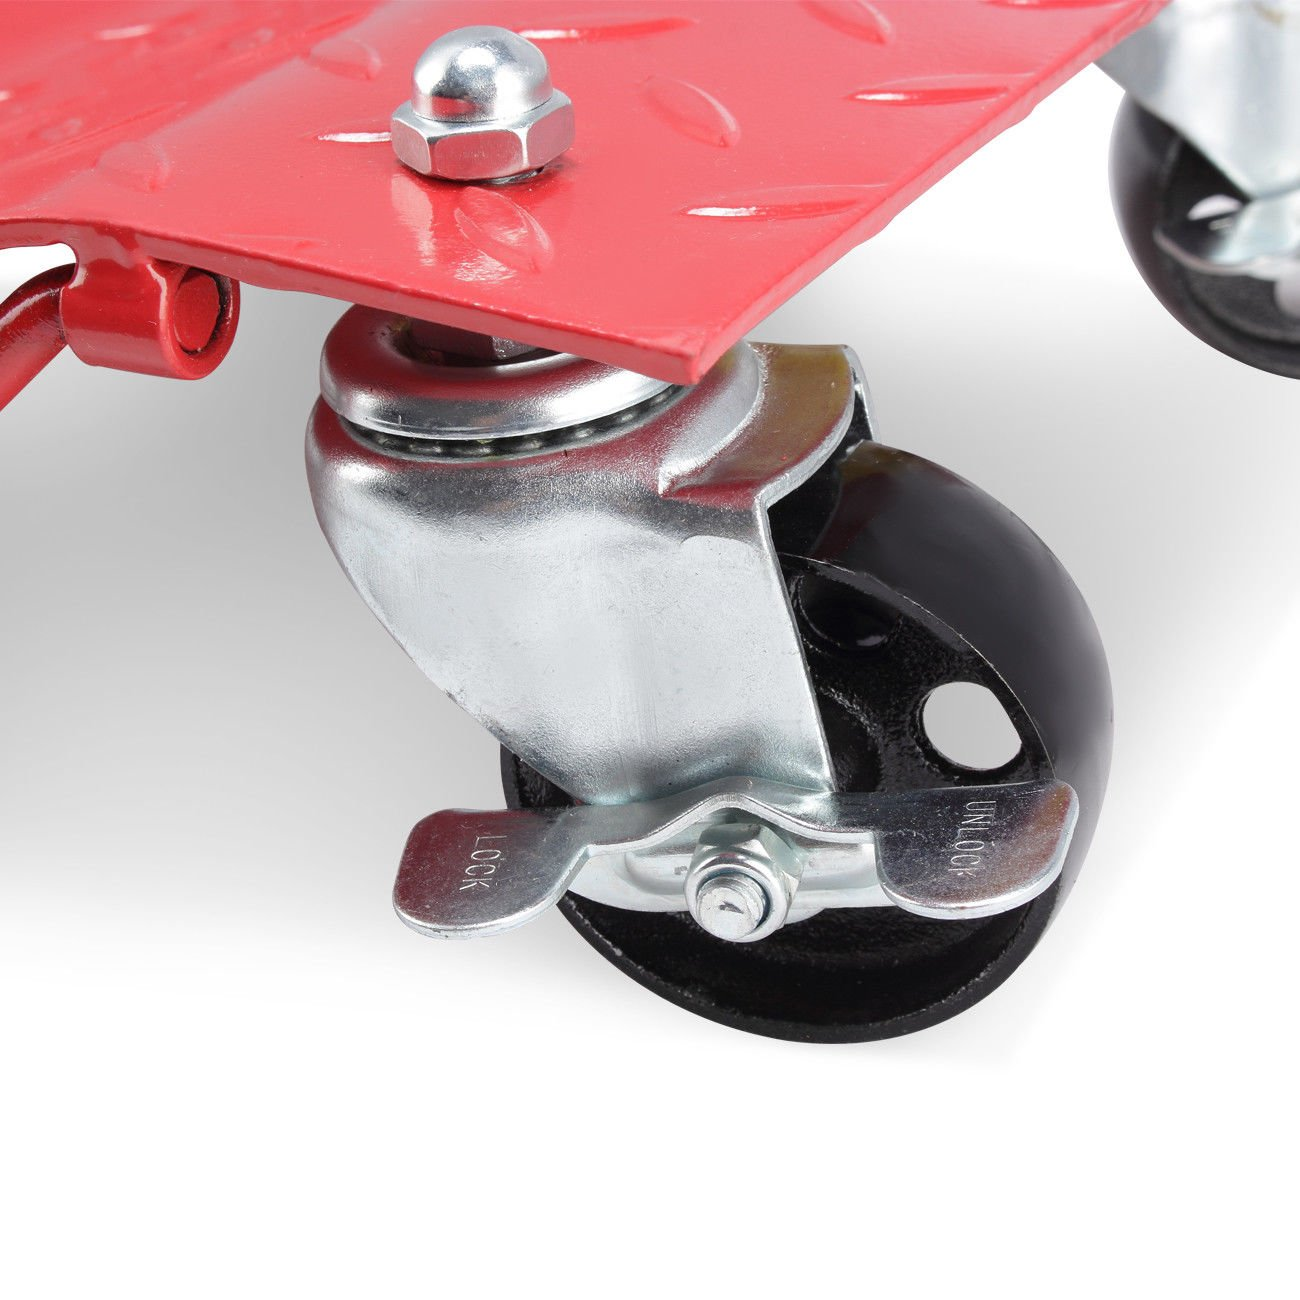 GHP 2-Pcs Red 1500-Lbs Capacity Steel Car Wheel Dollies with 3'' Casters & Lock by Globe House Products (Image #4)